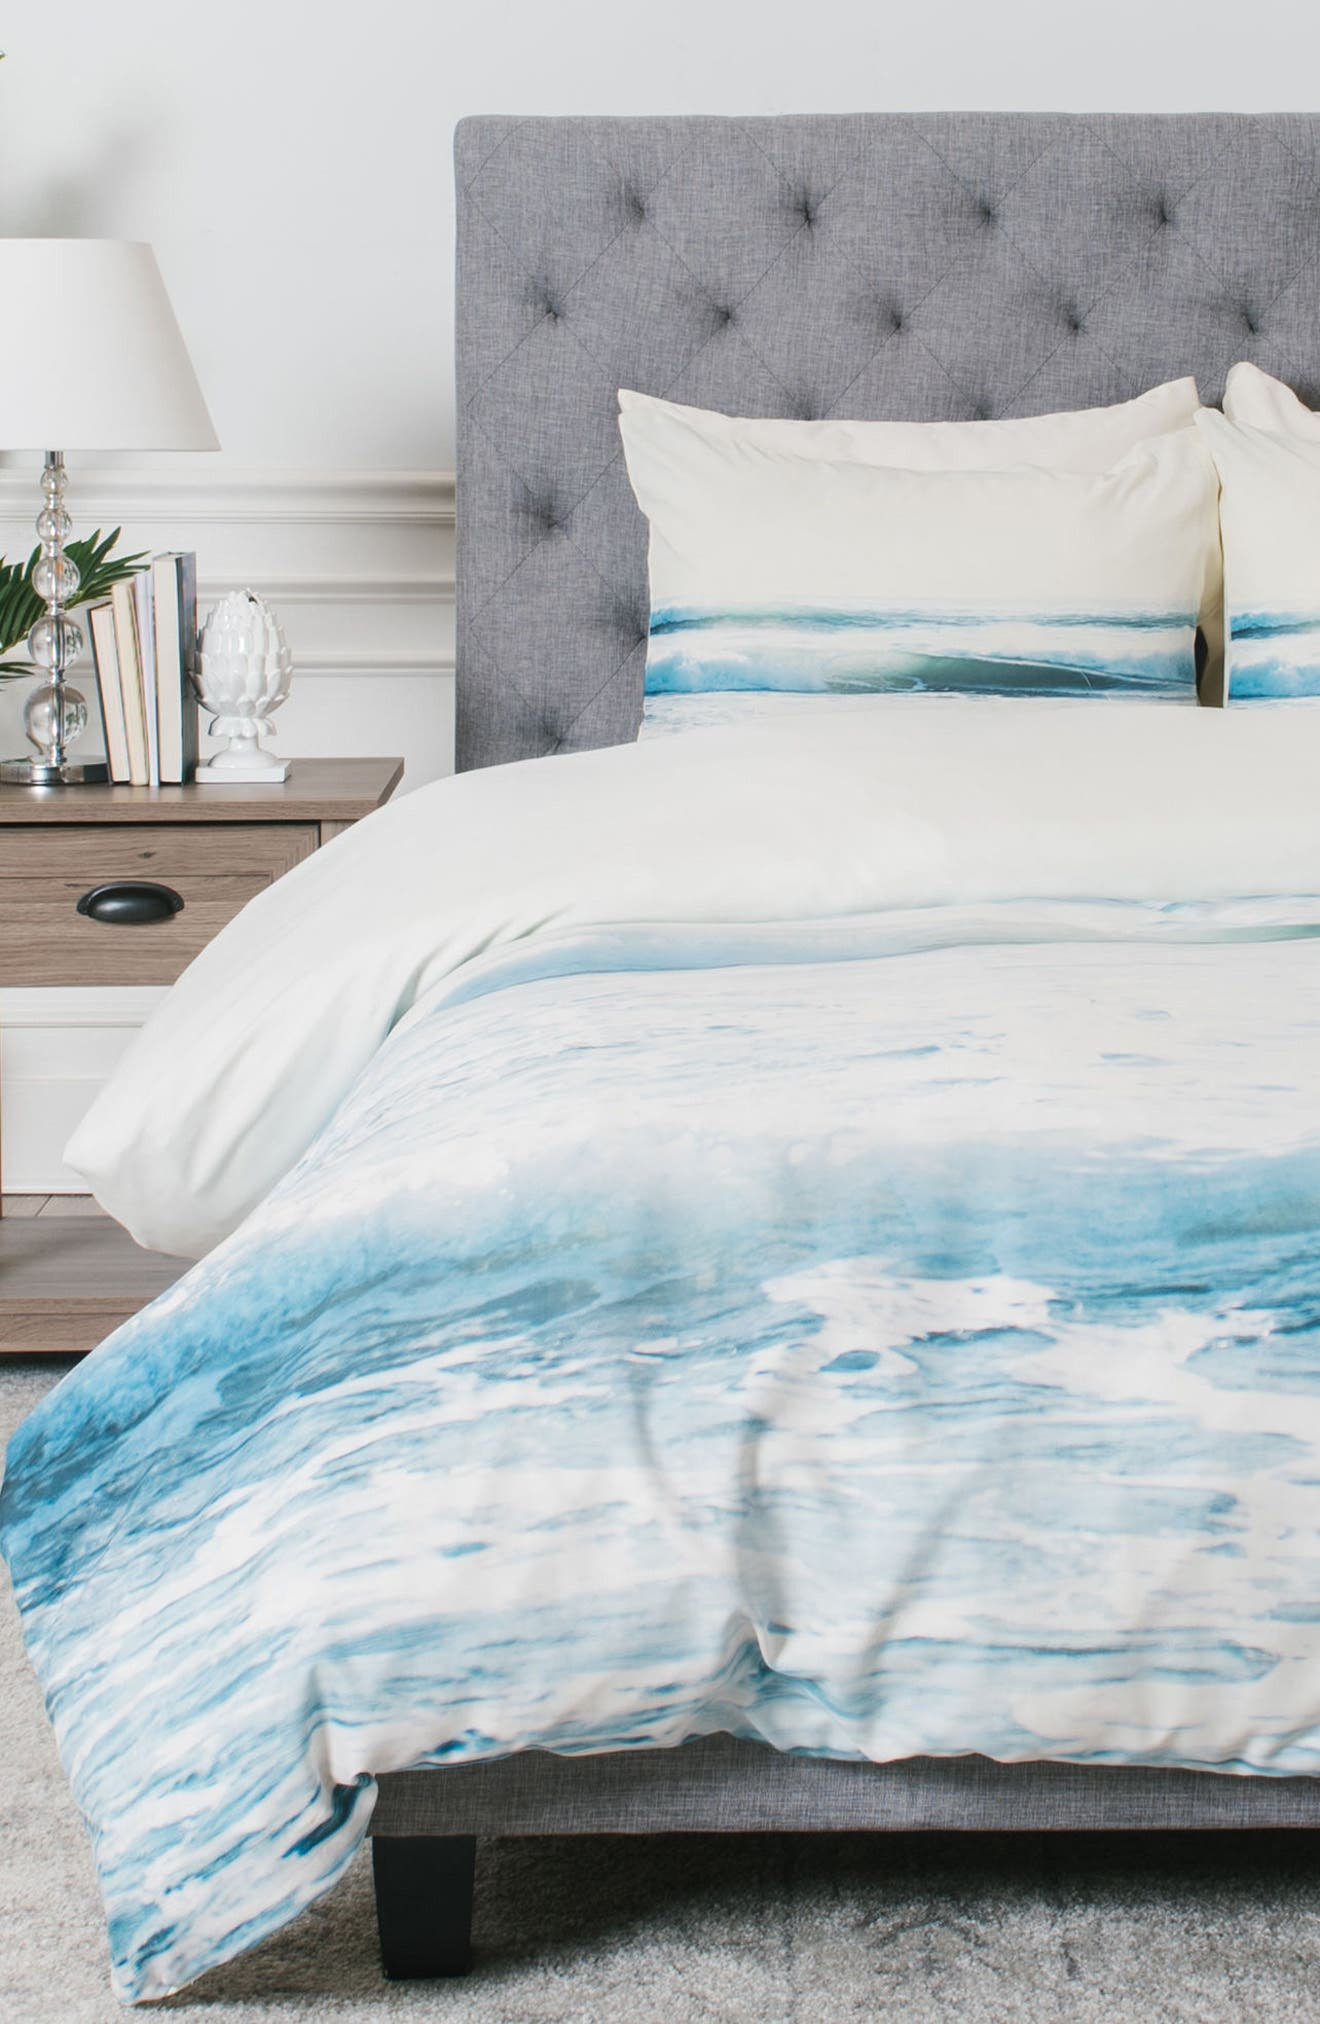 Alternate Image 1 Selected - DENY Designs Ride Waves Duvet Cover & Sham Set